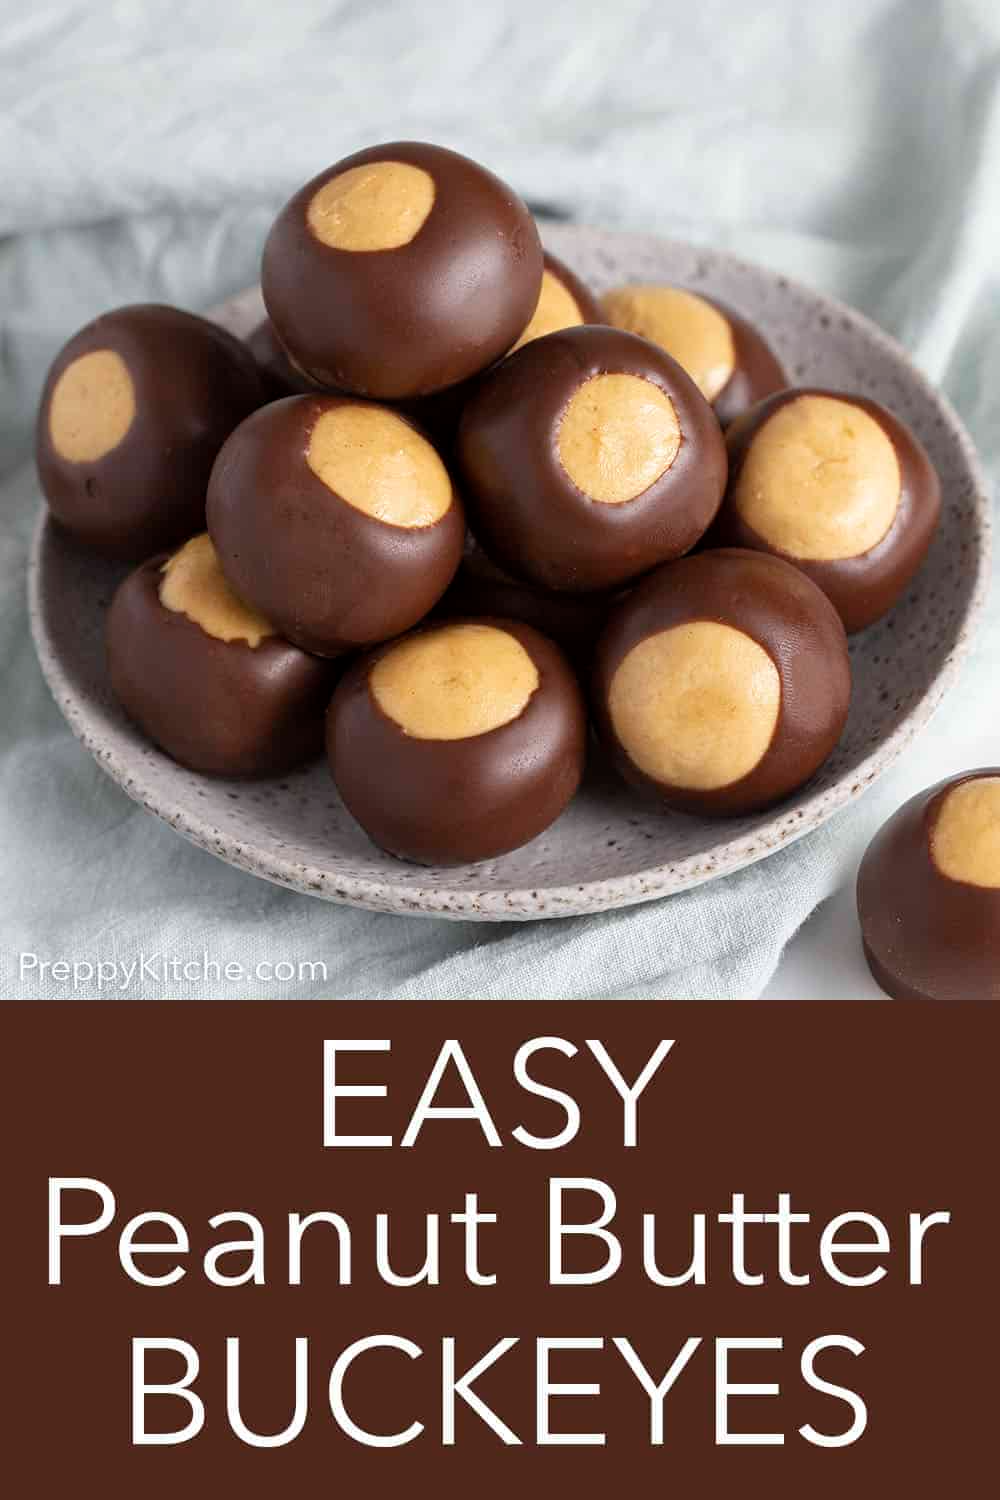 Buckeye Recipe - Preppy Kitchen -   18 buckeyes recipe easy best ideas